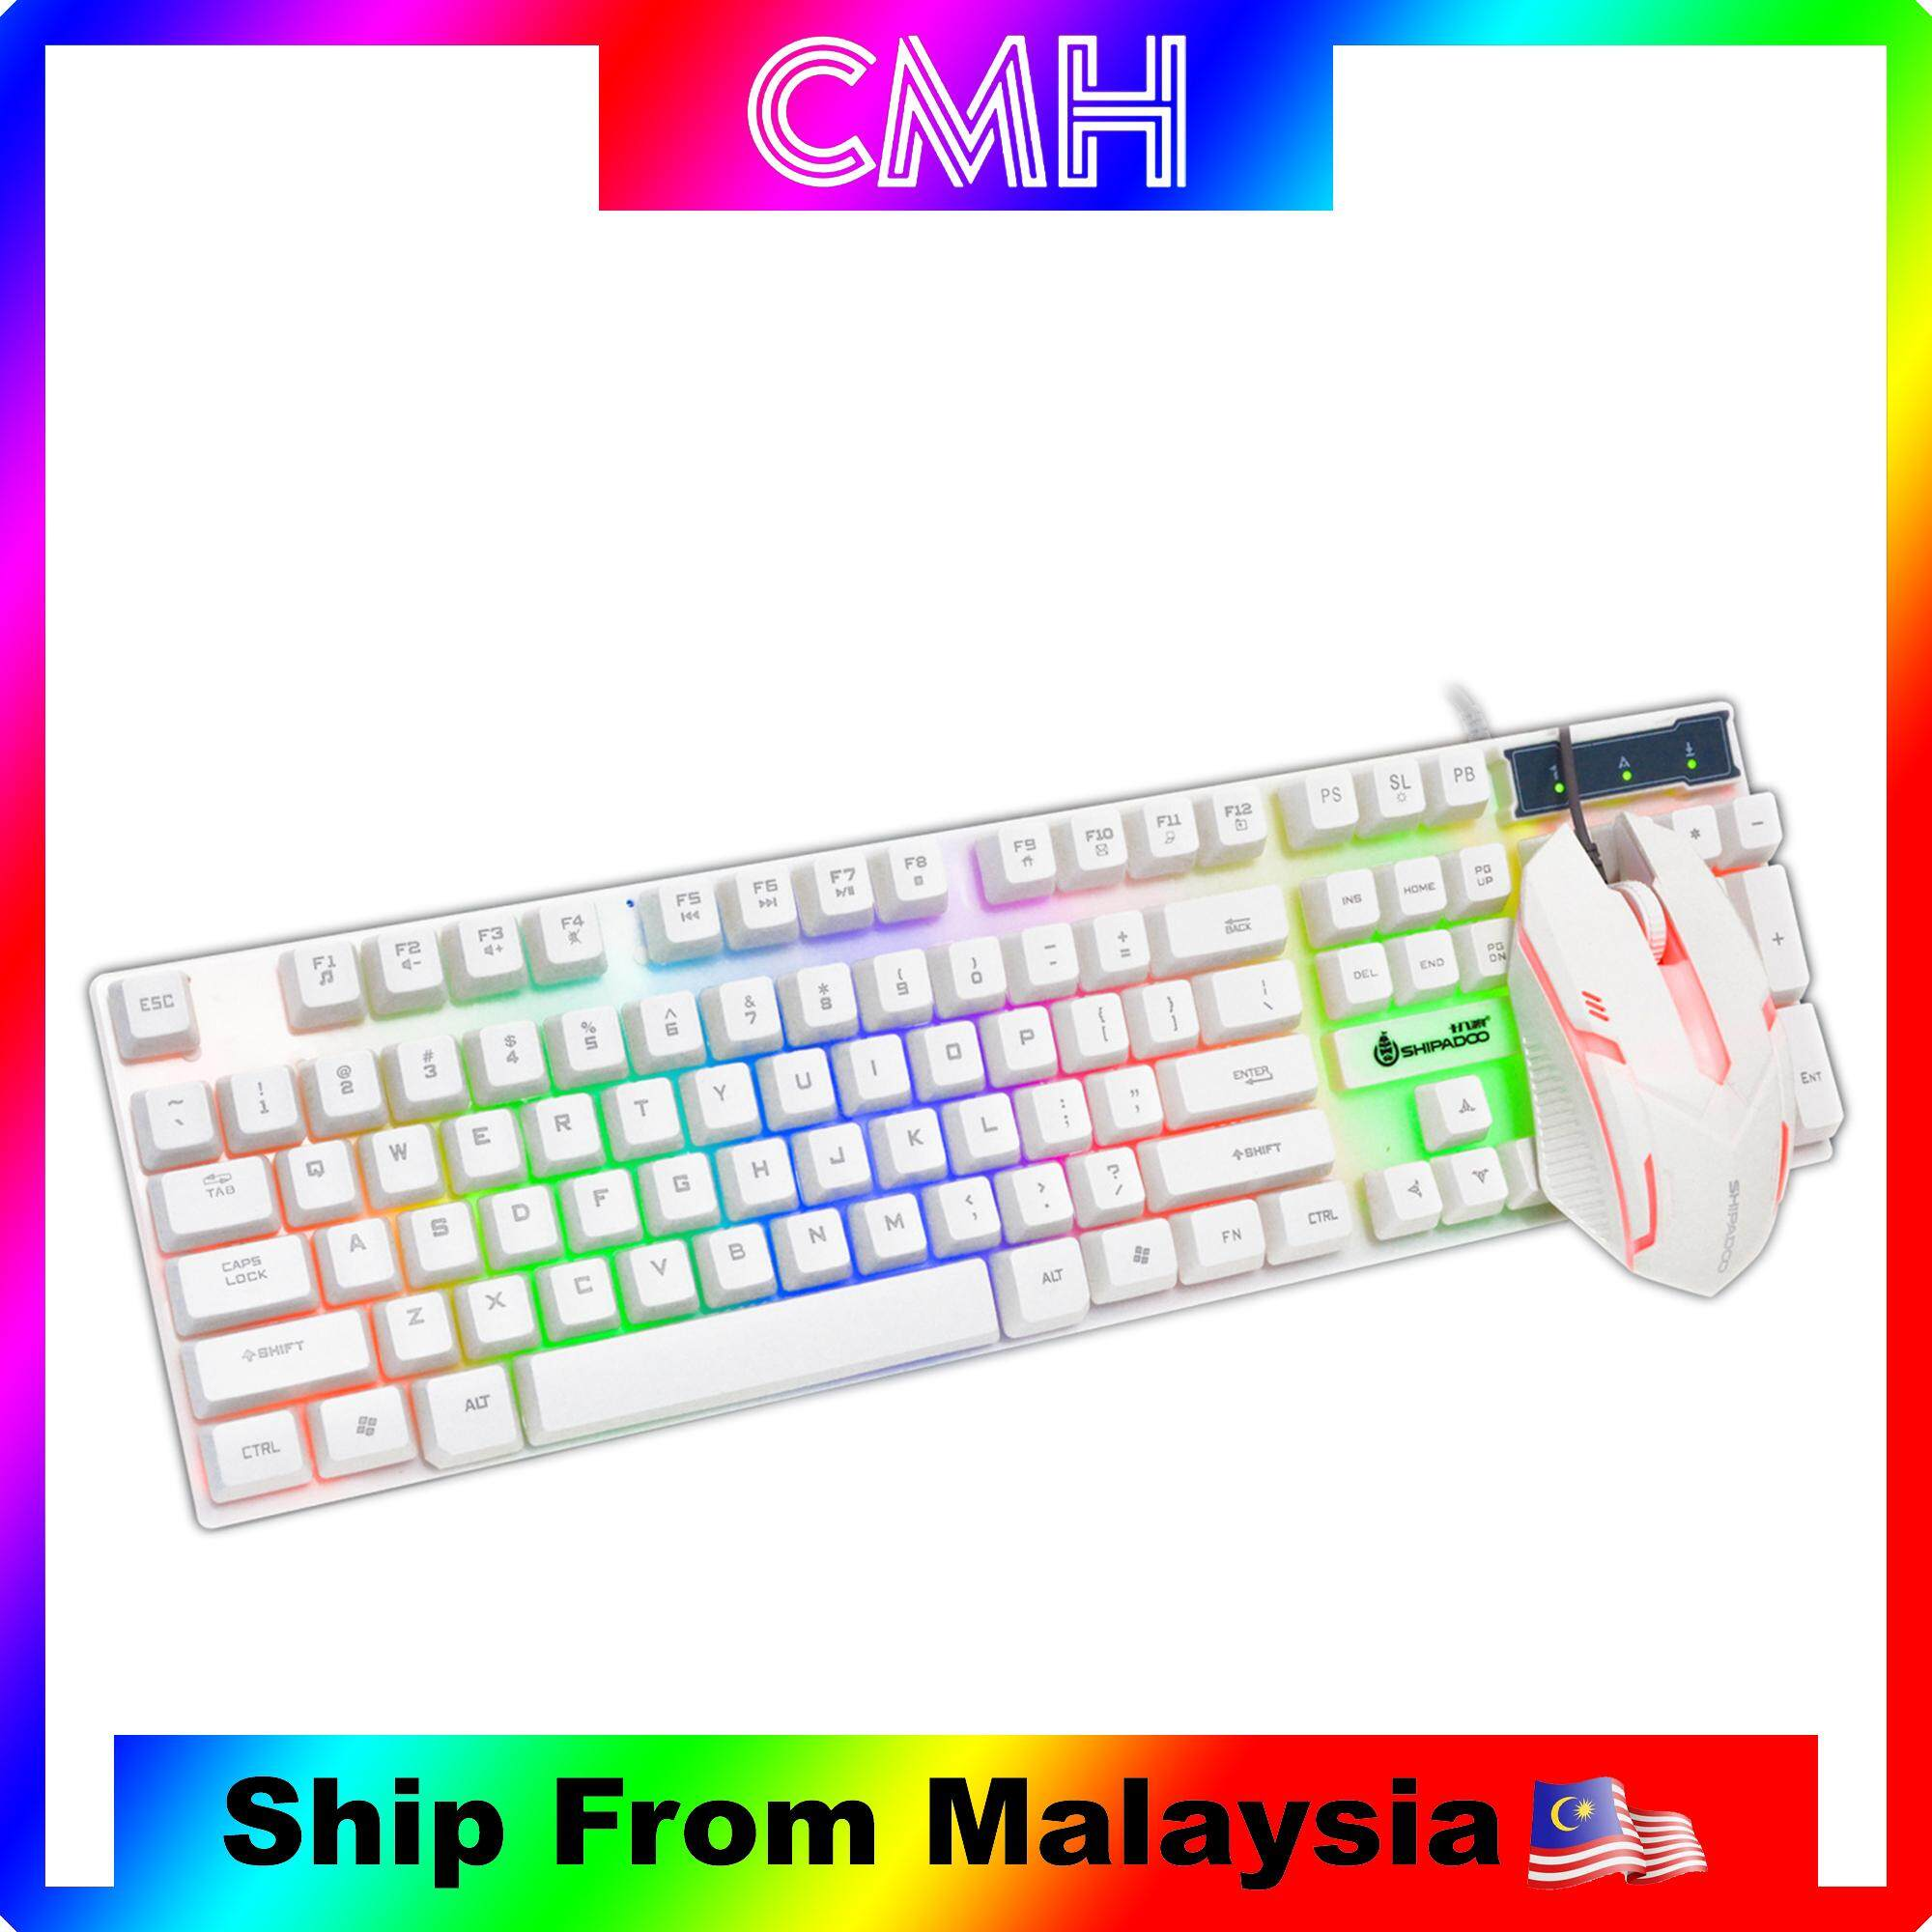 CMH USB Wired Gaming Keyboard and Mouse Combo Set With Rainbow Color Light For PC/Laptop. Illuminated Keyboard and Mouse Set For Home, Office and Gaming Use. (White Color) Malaysia